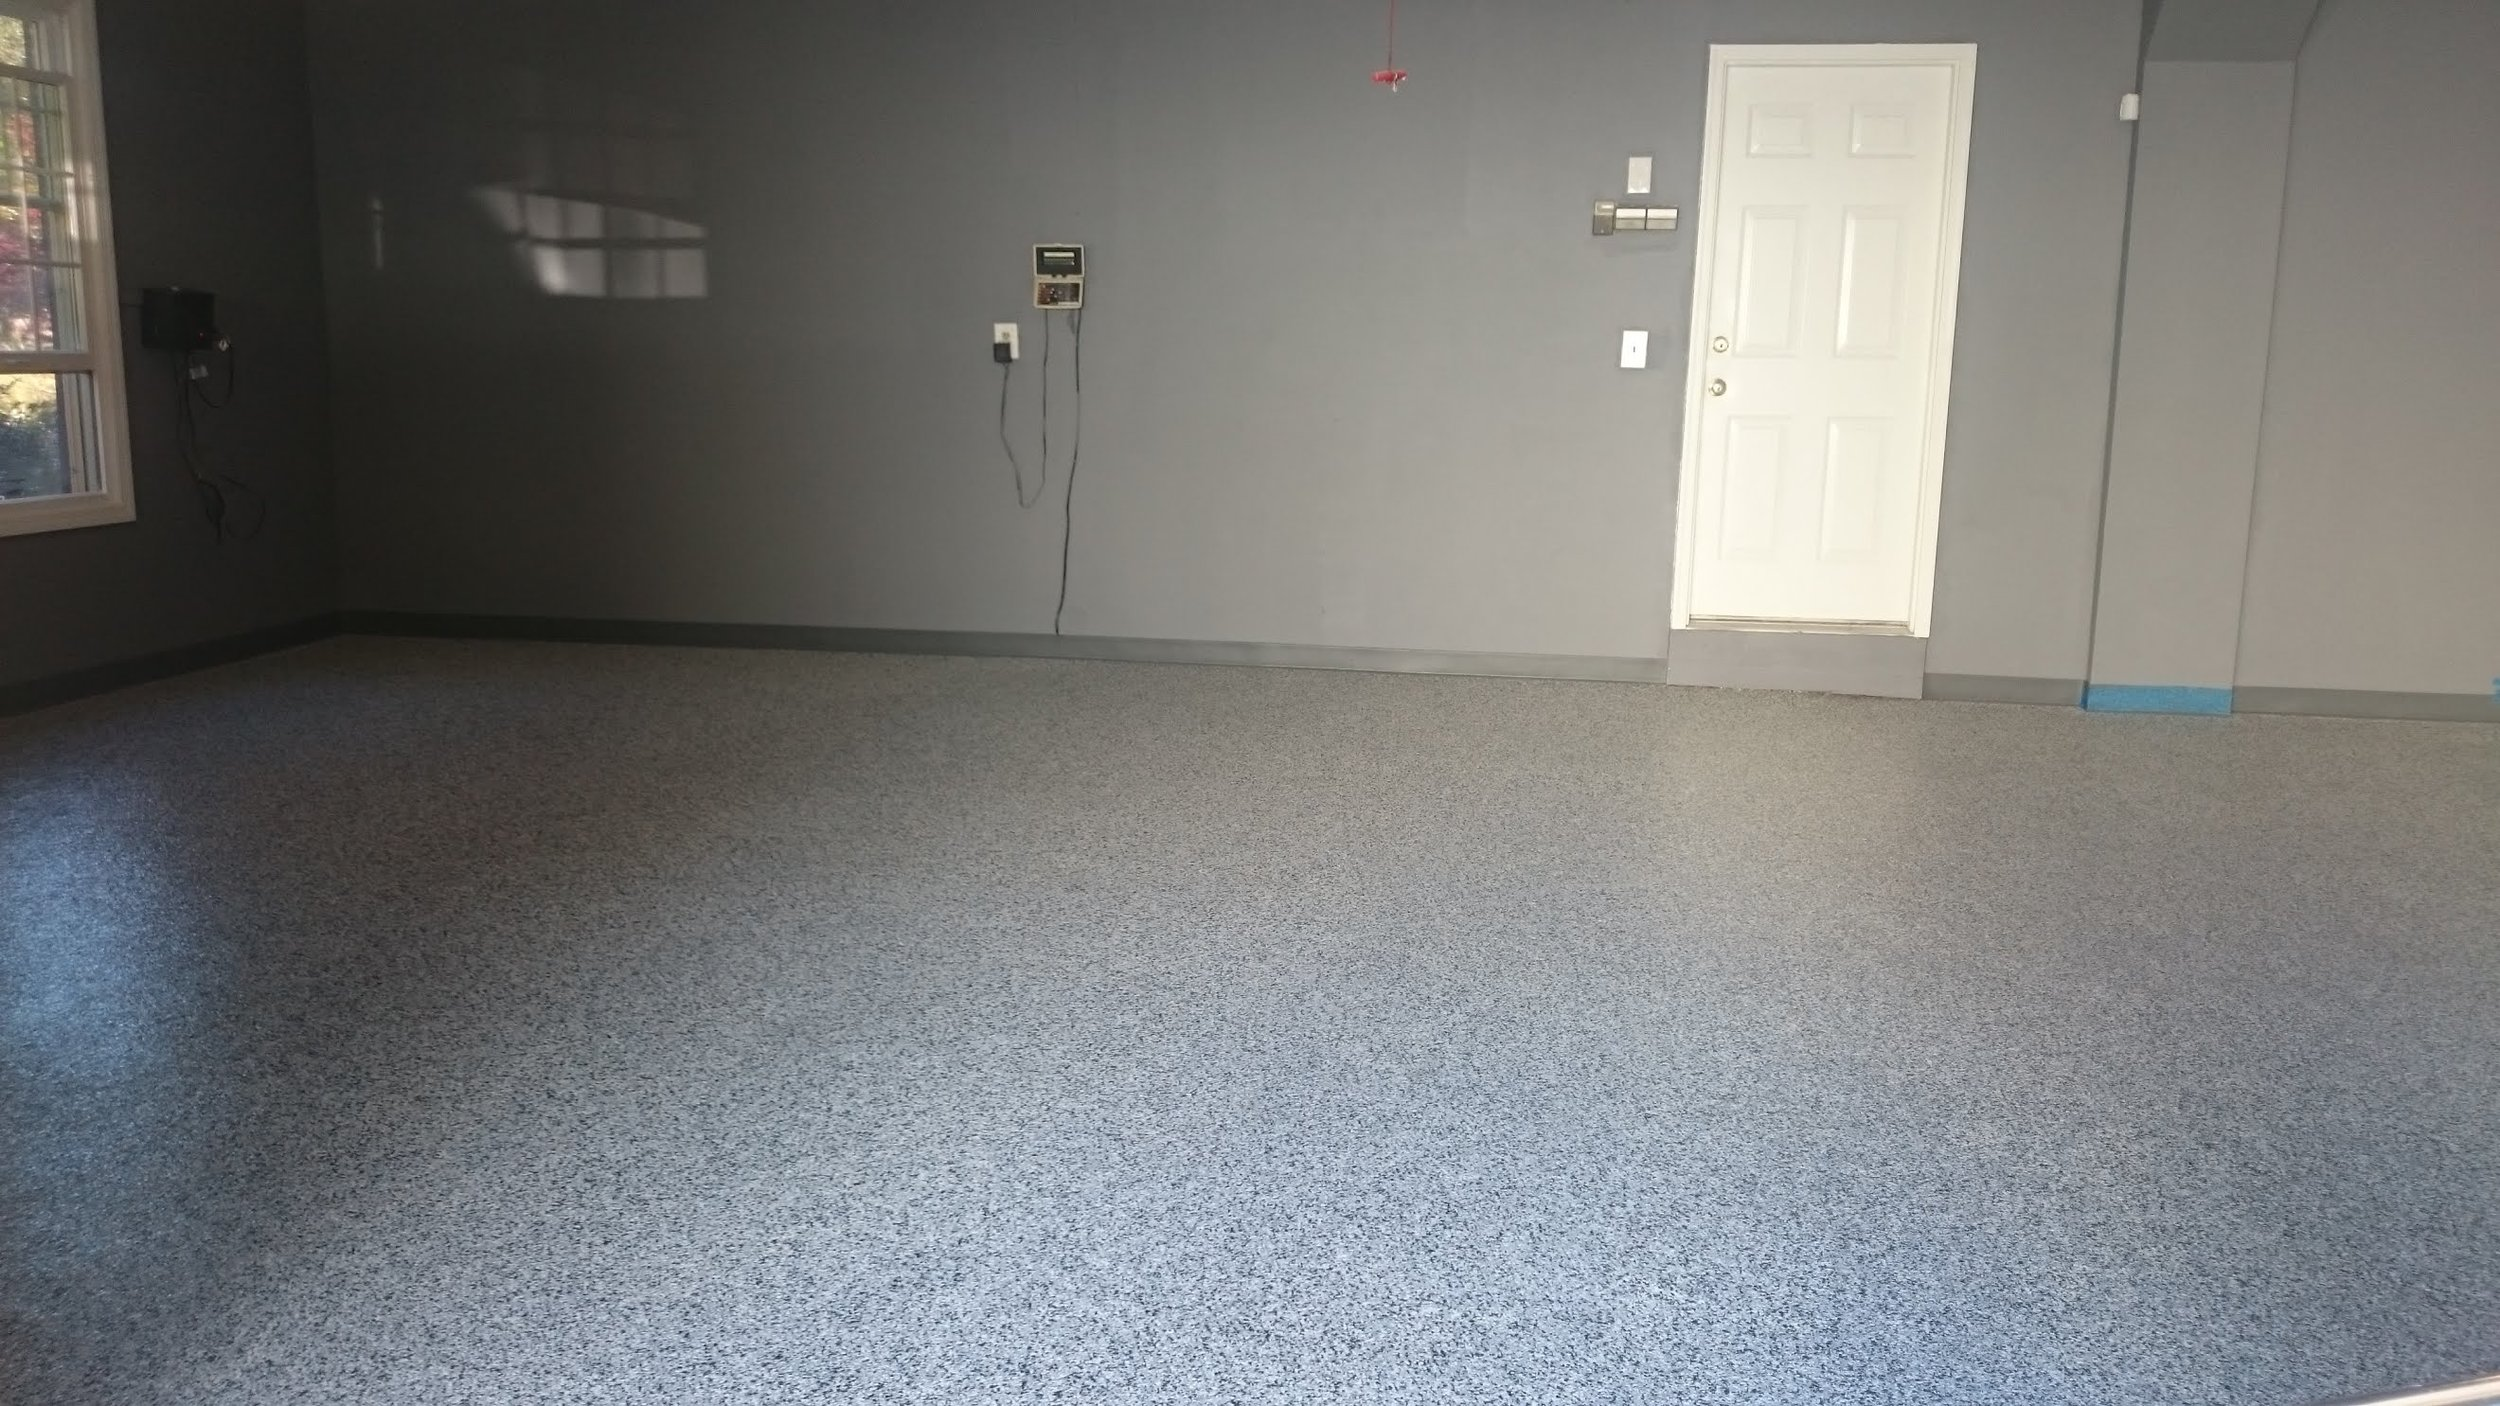 Commercial industrial concrete floor polyurea / epoxy coating example